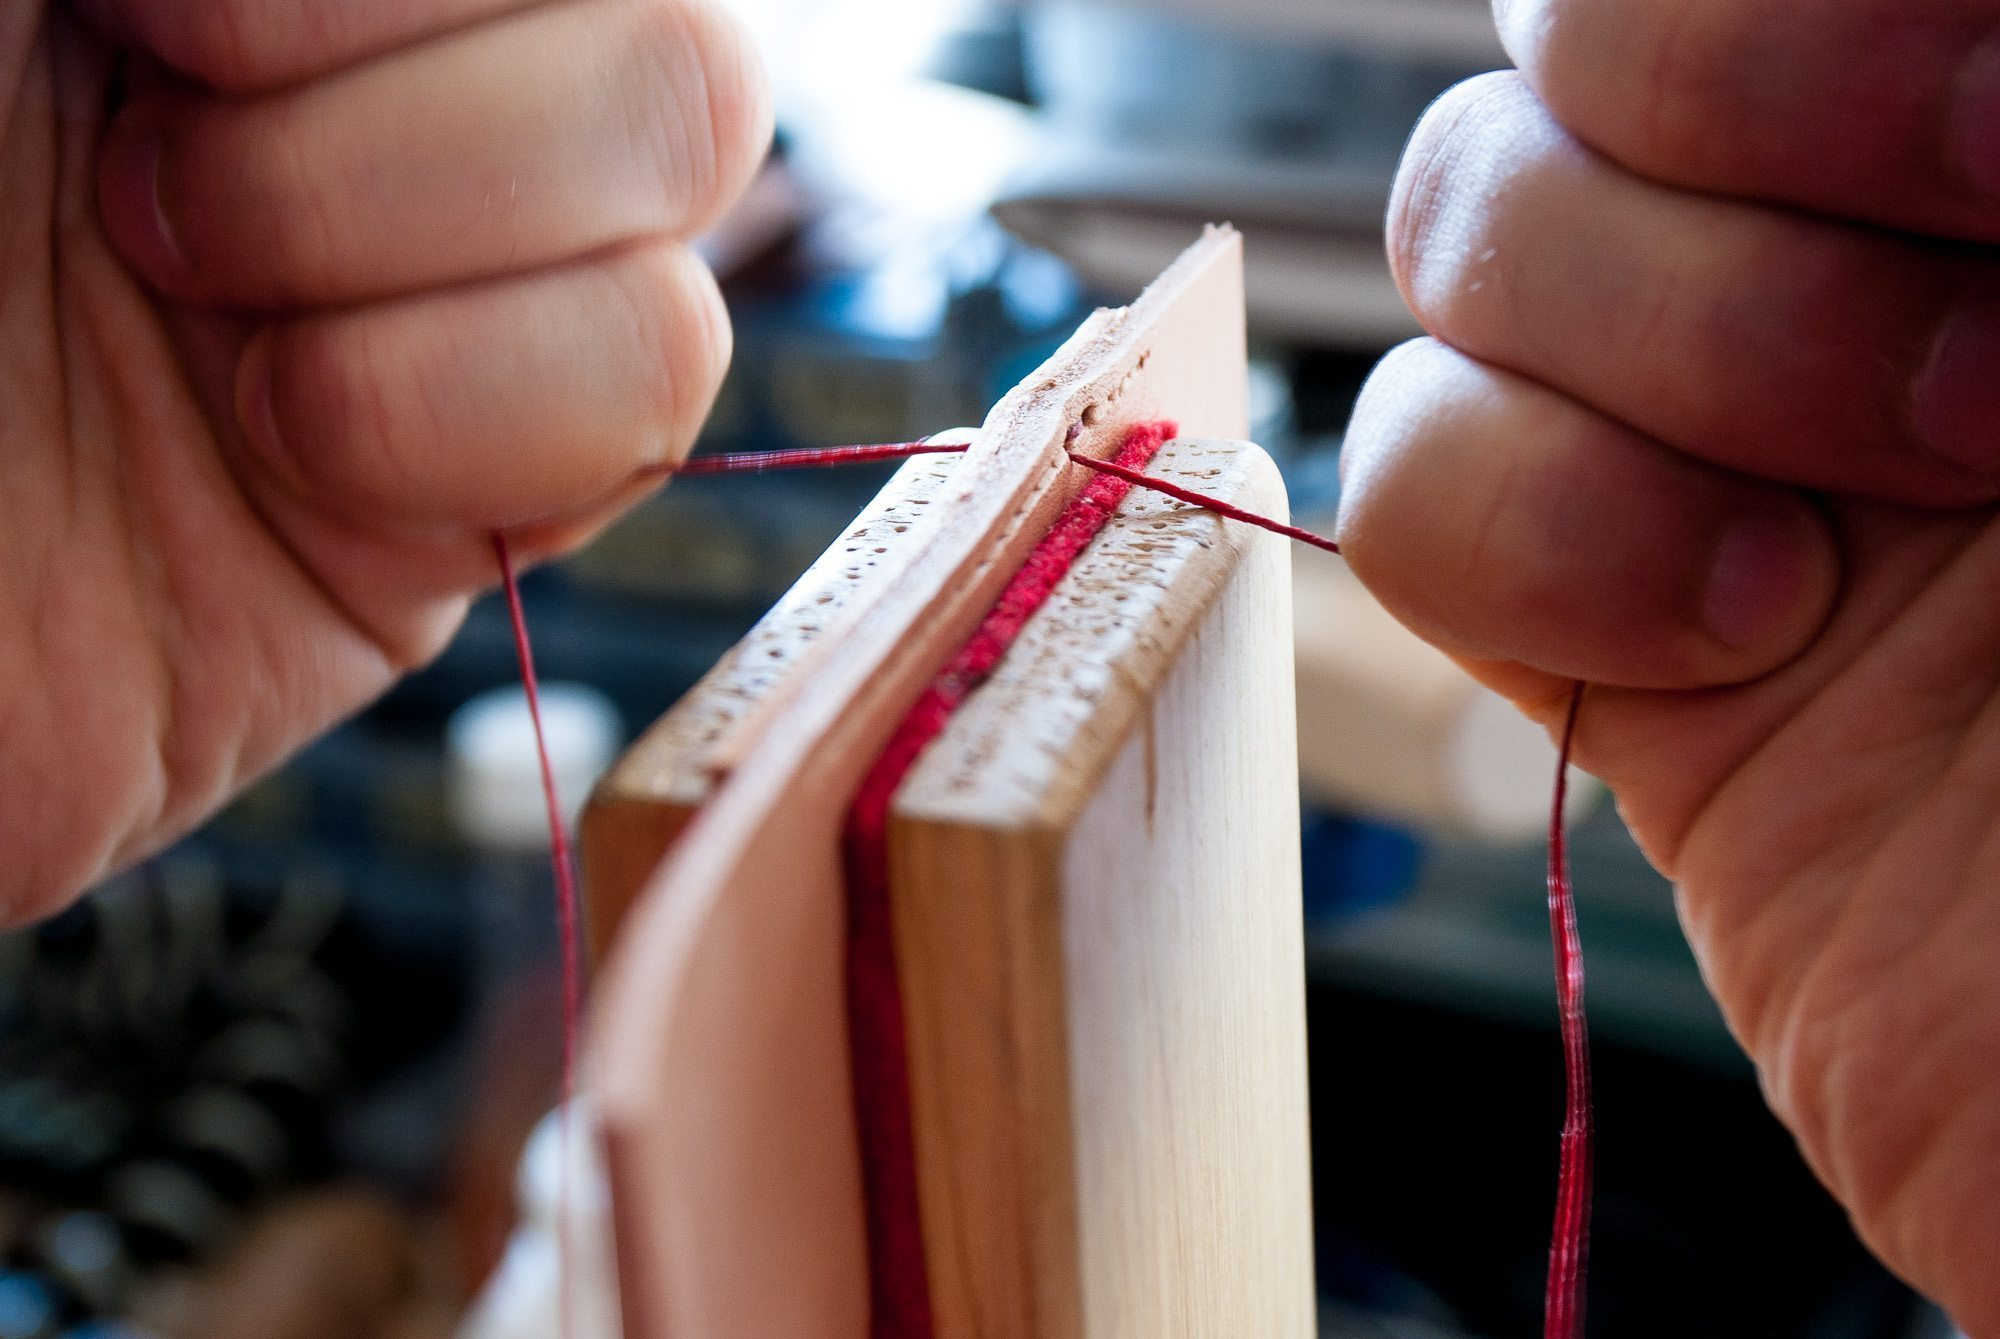 Step 8: pull the thread tight & repeat previous step (Step 7) for each stitch